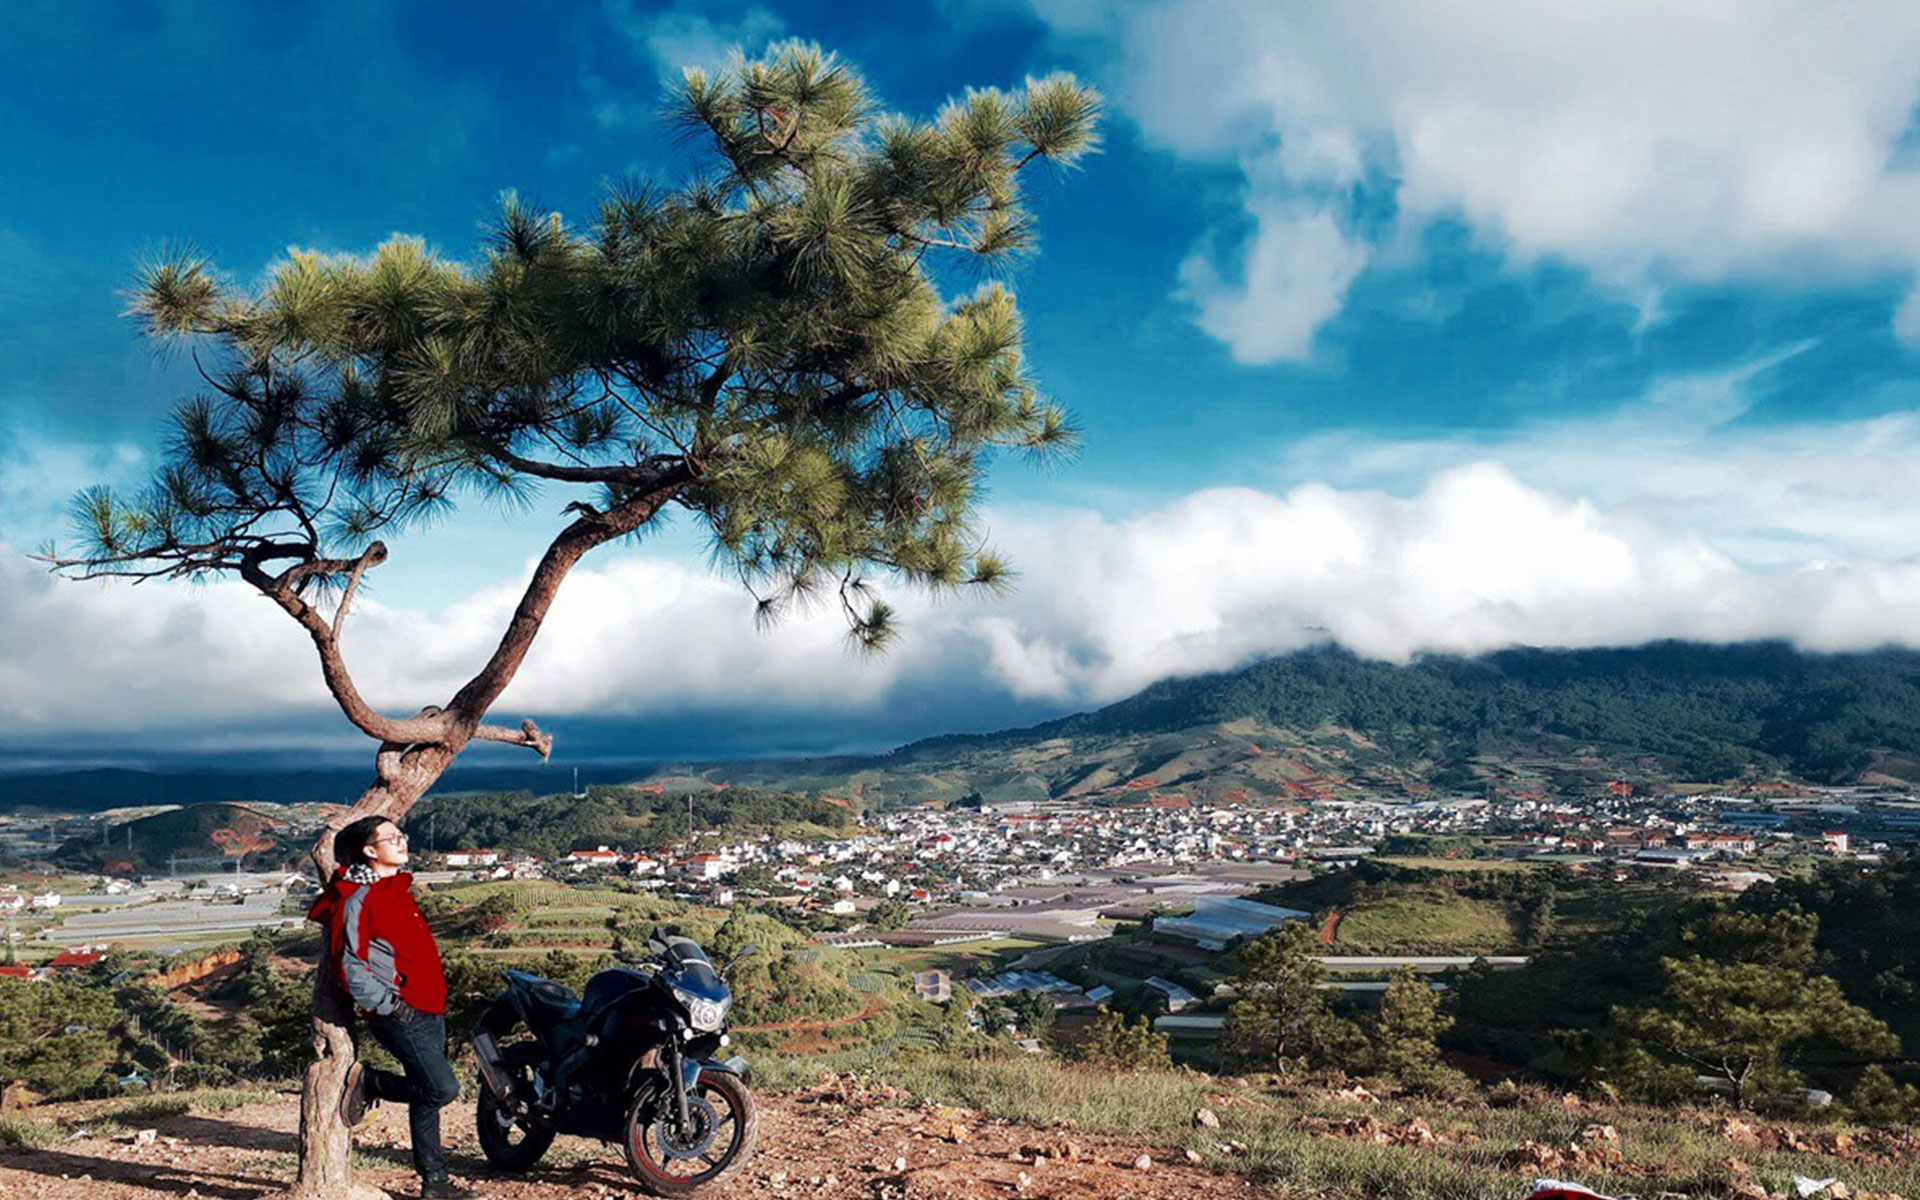 Travelling by motorbike